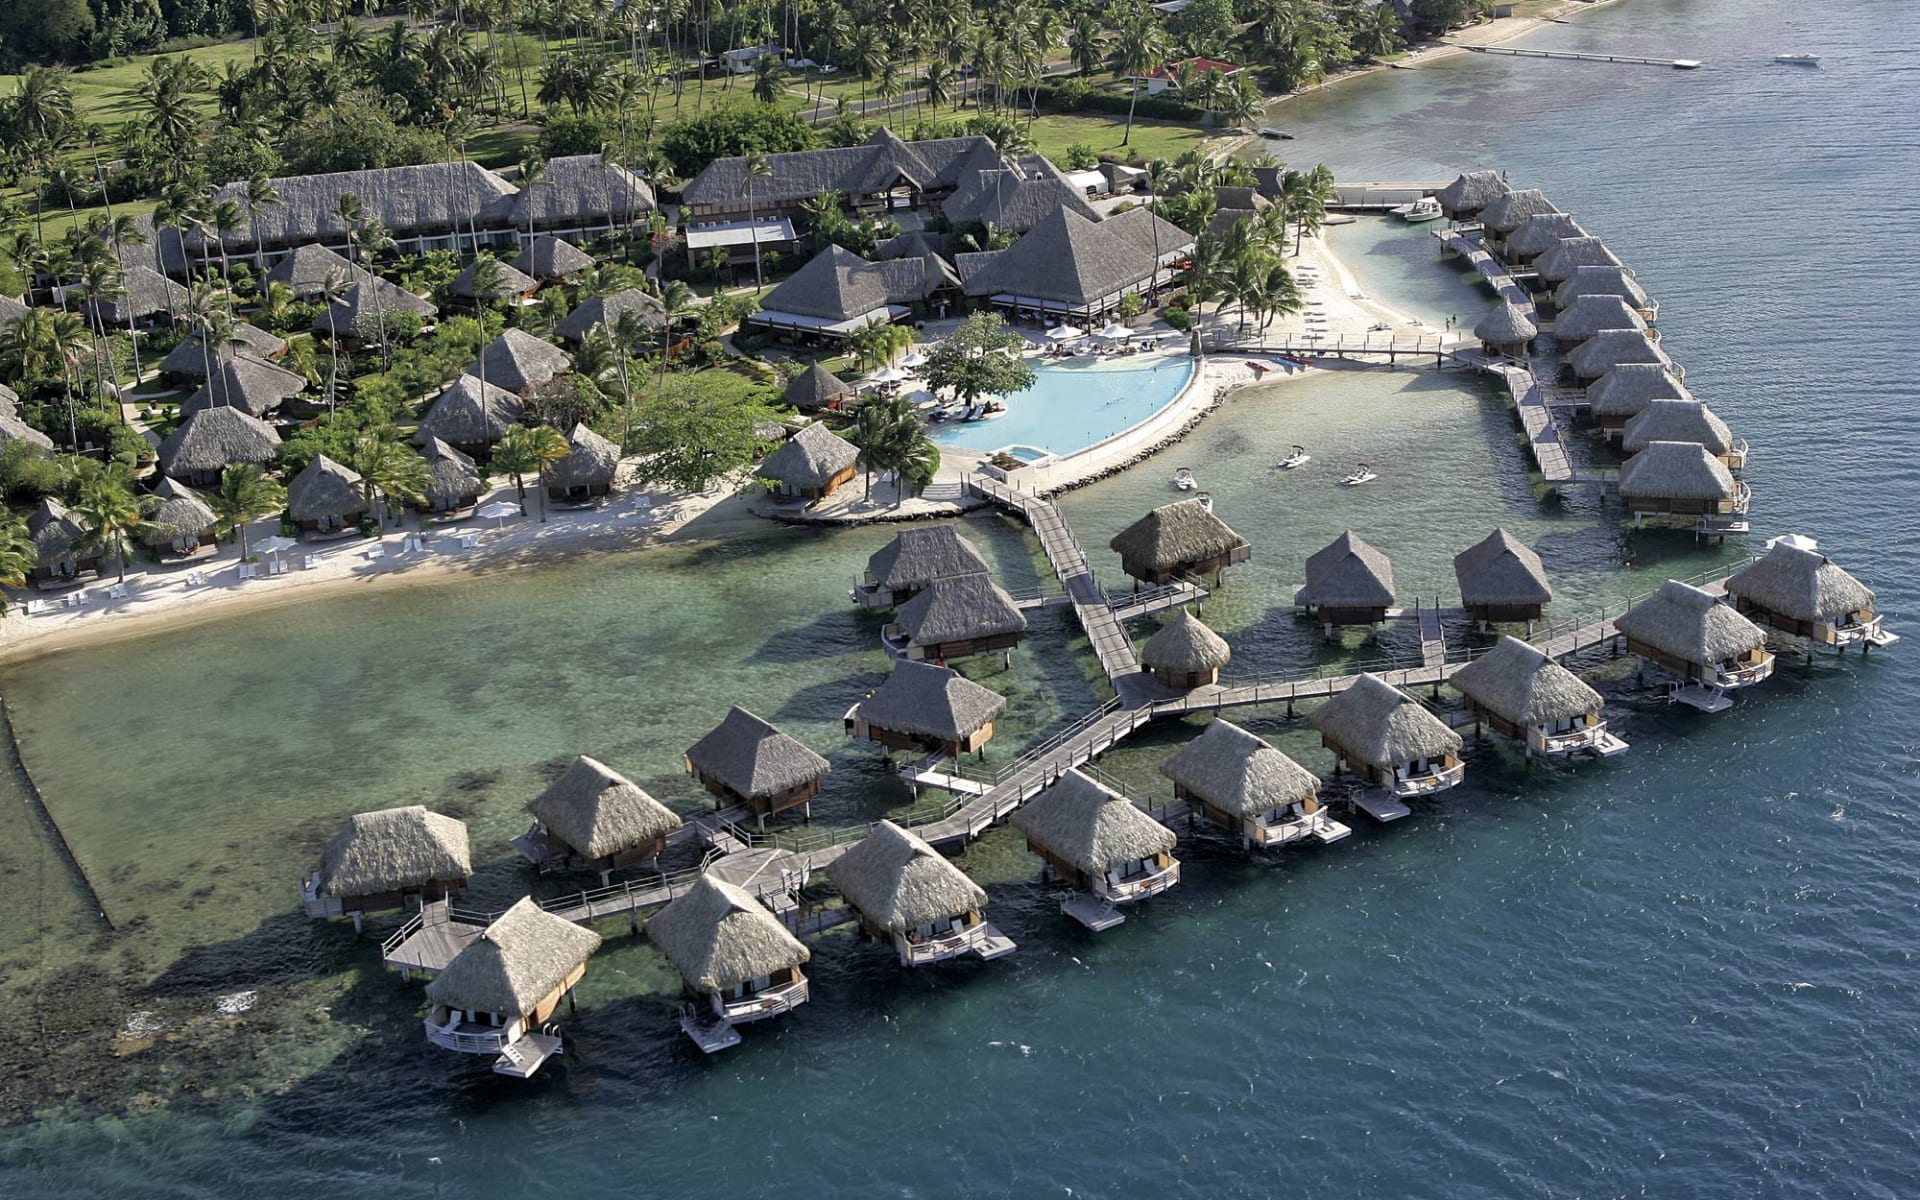 Manava Beach Resort & Spa in Moorea:  Moorea Pearl Resort & Spa - Vogelperspektive auf gesamte Anlage